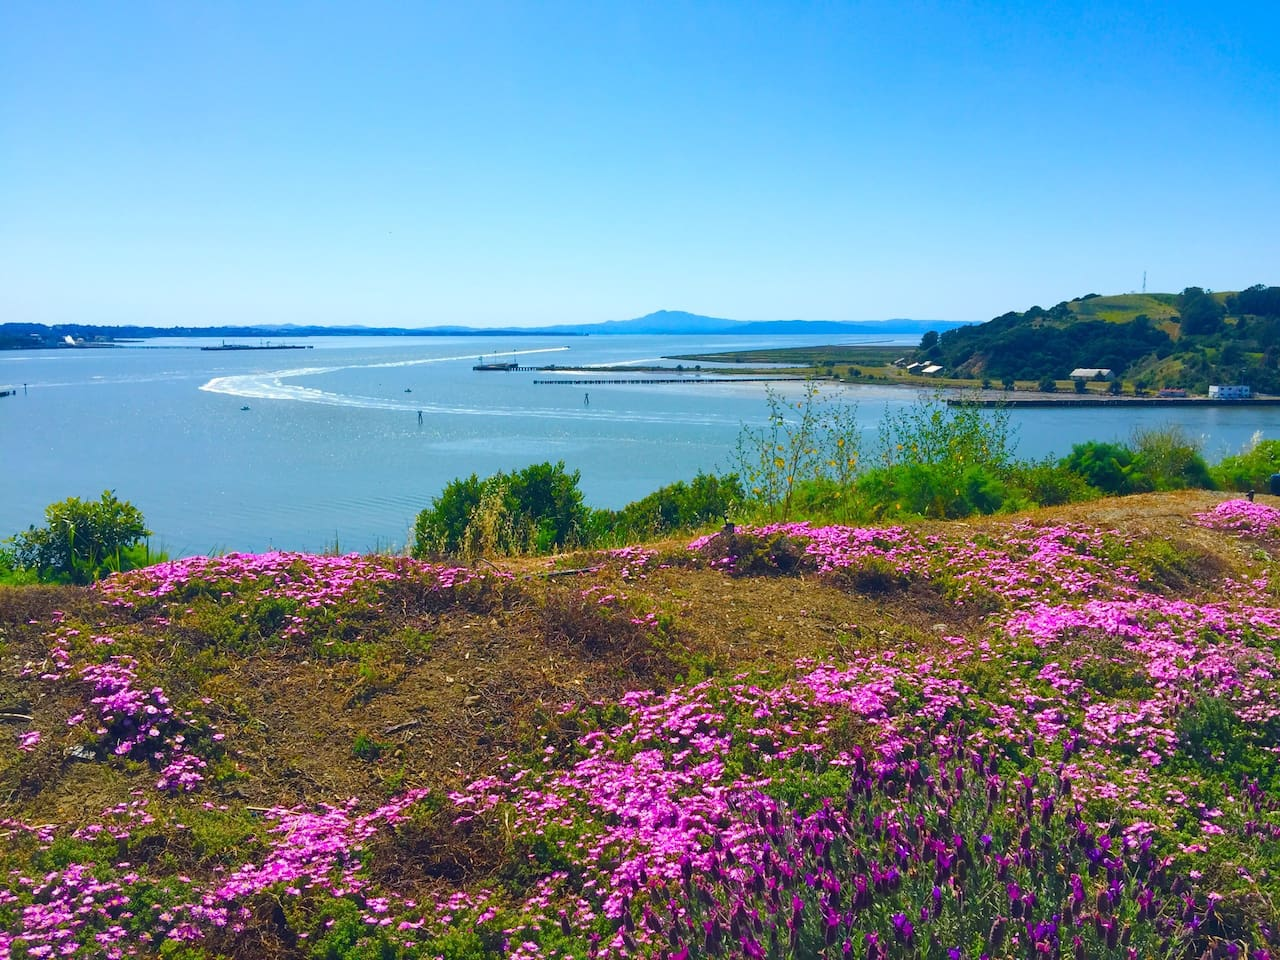 Walking distance to vista point of San Pablo bay ( note: you have to walk one minute to see the view. It's not the view from your window)